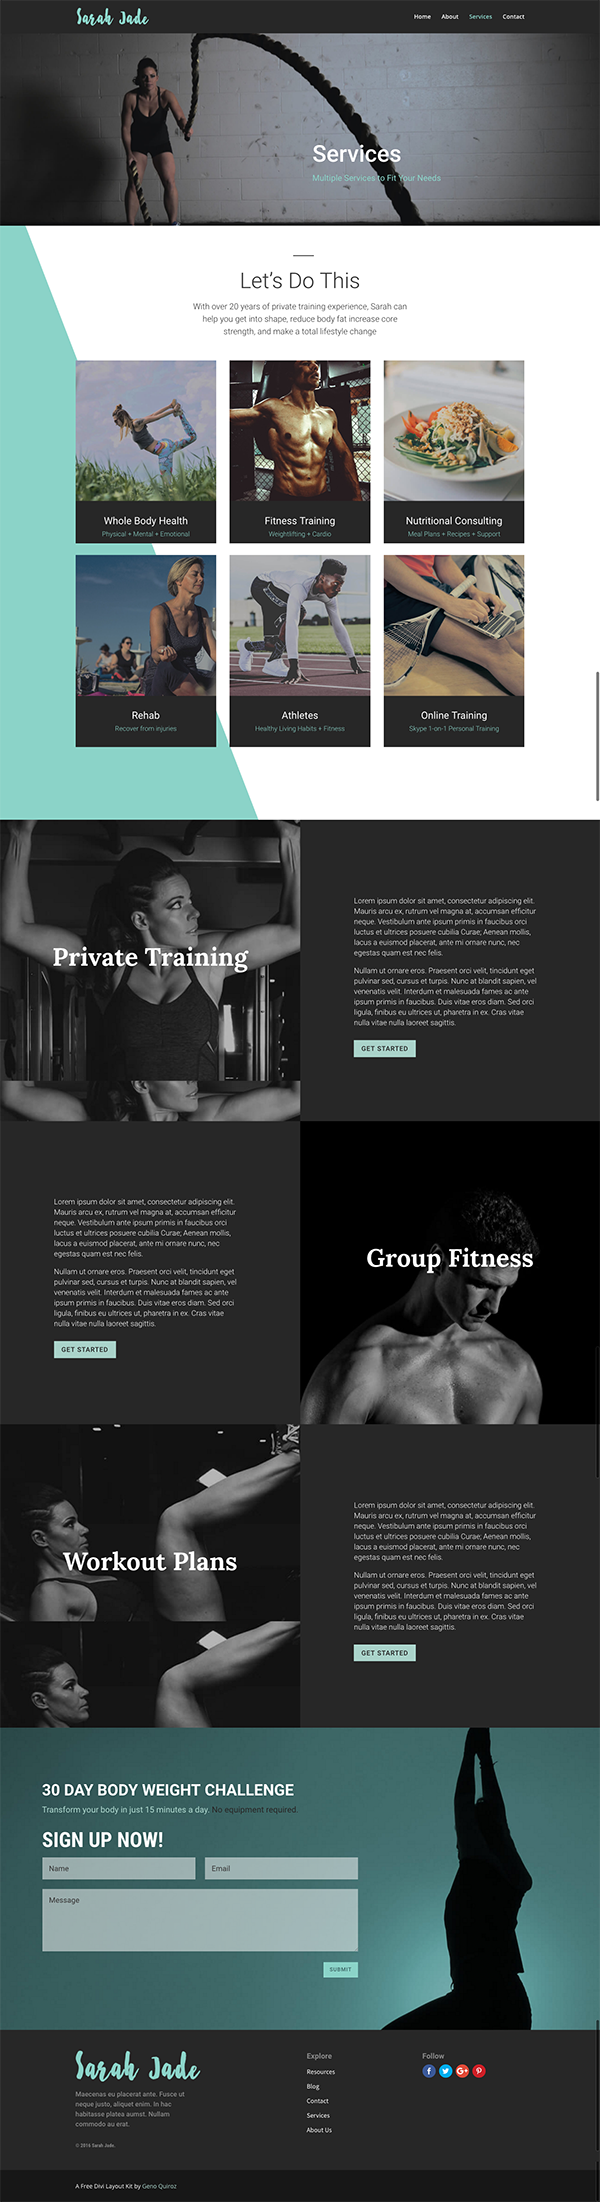 A Free Divi Layout for a Fitness or Coaching Website